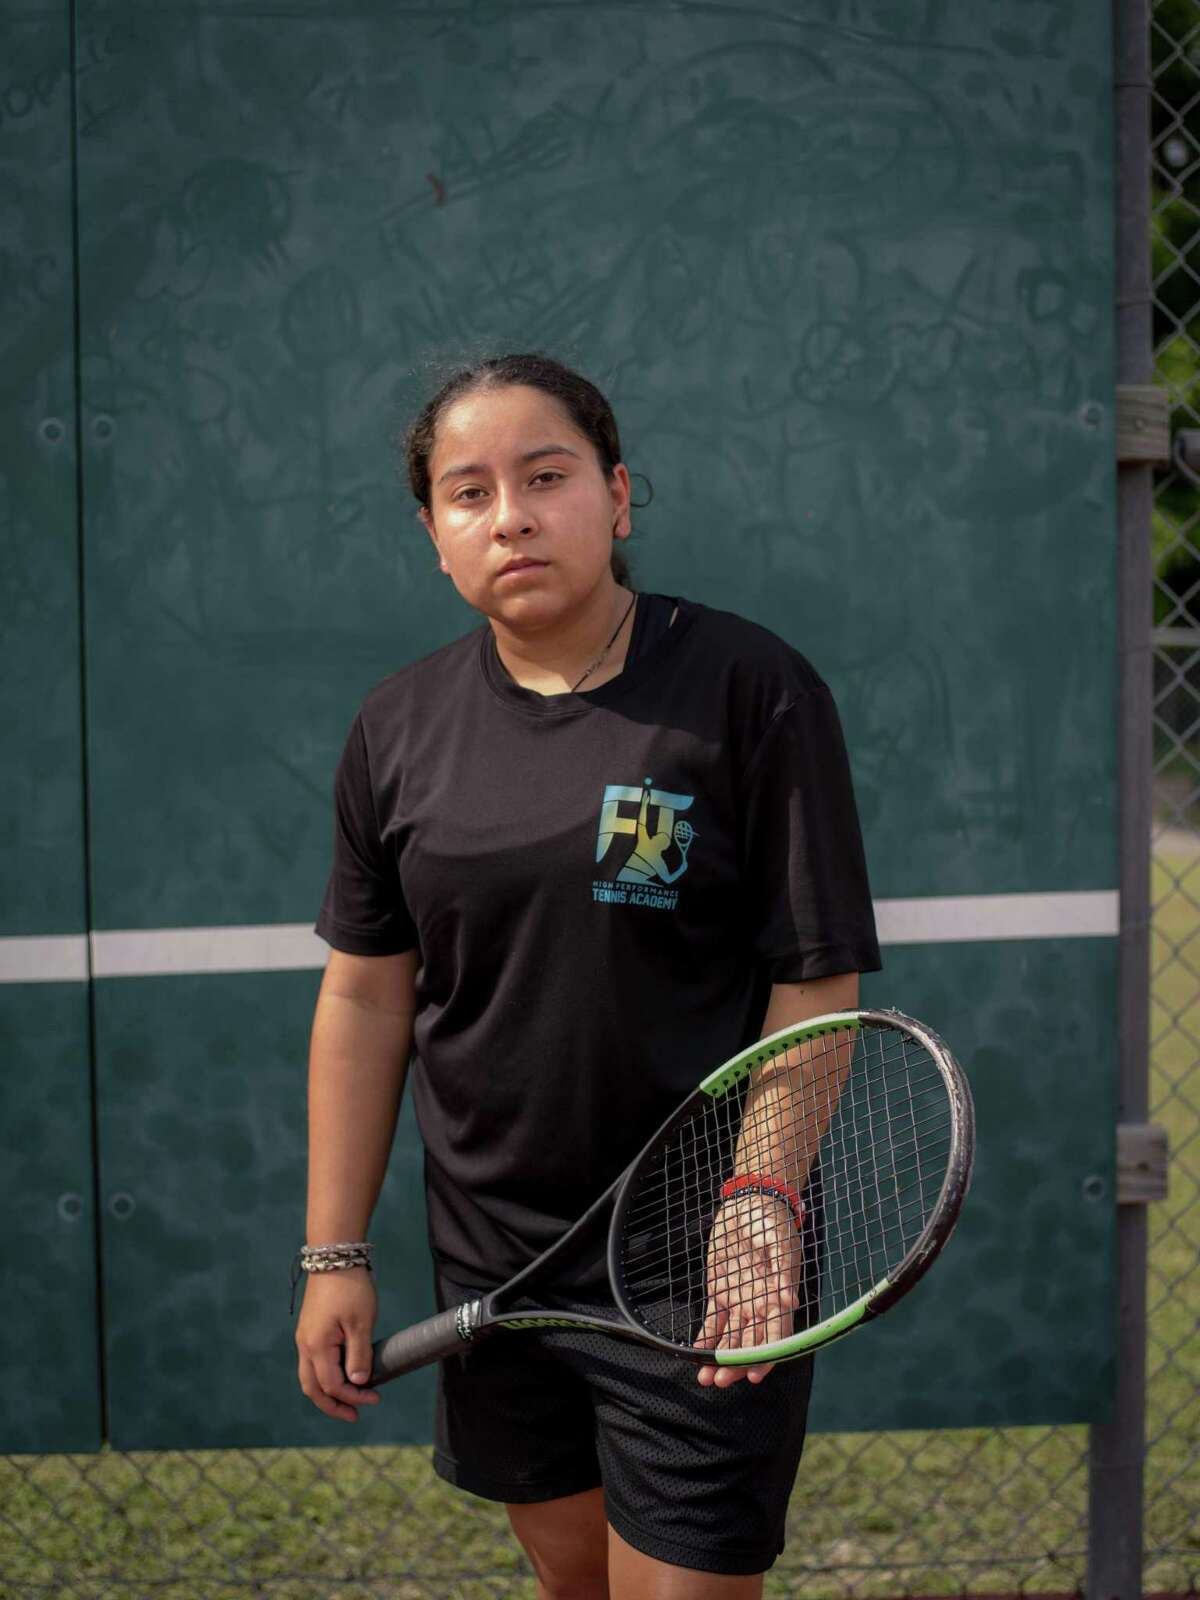 Burbank High School sophomore tennis player Valerie Navarro-Cavazos poses for a portrait on Monday, May 13, 2019. Navarro-Cavazos is the first girl from Burbank to go the state tournament in tennis since 1965. She is competing to be the first girl ever to win a girls' singles state title from San Antonio Independent School District.